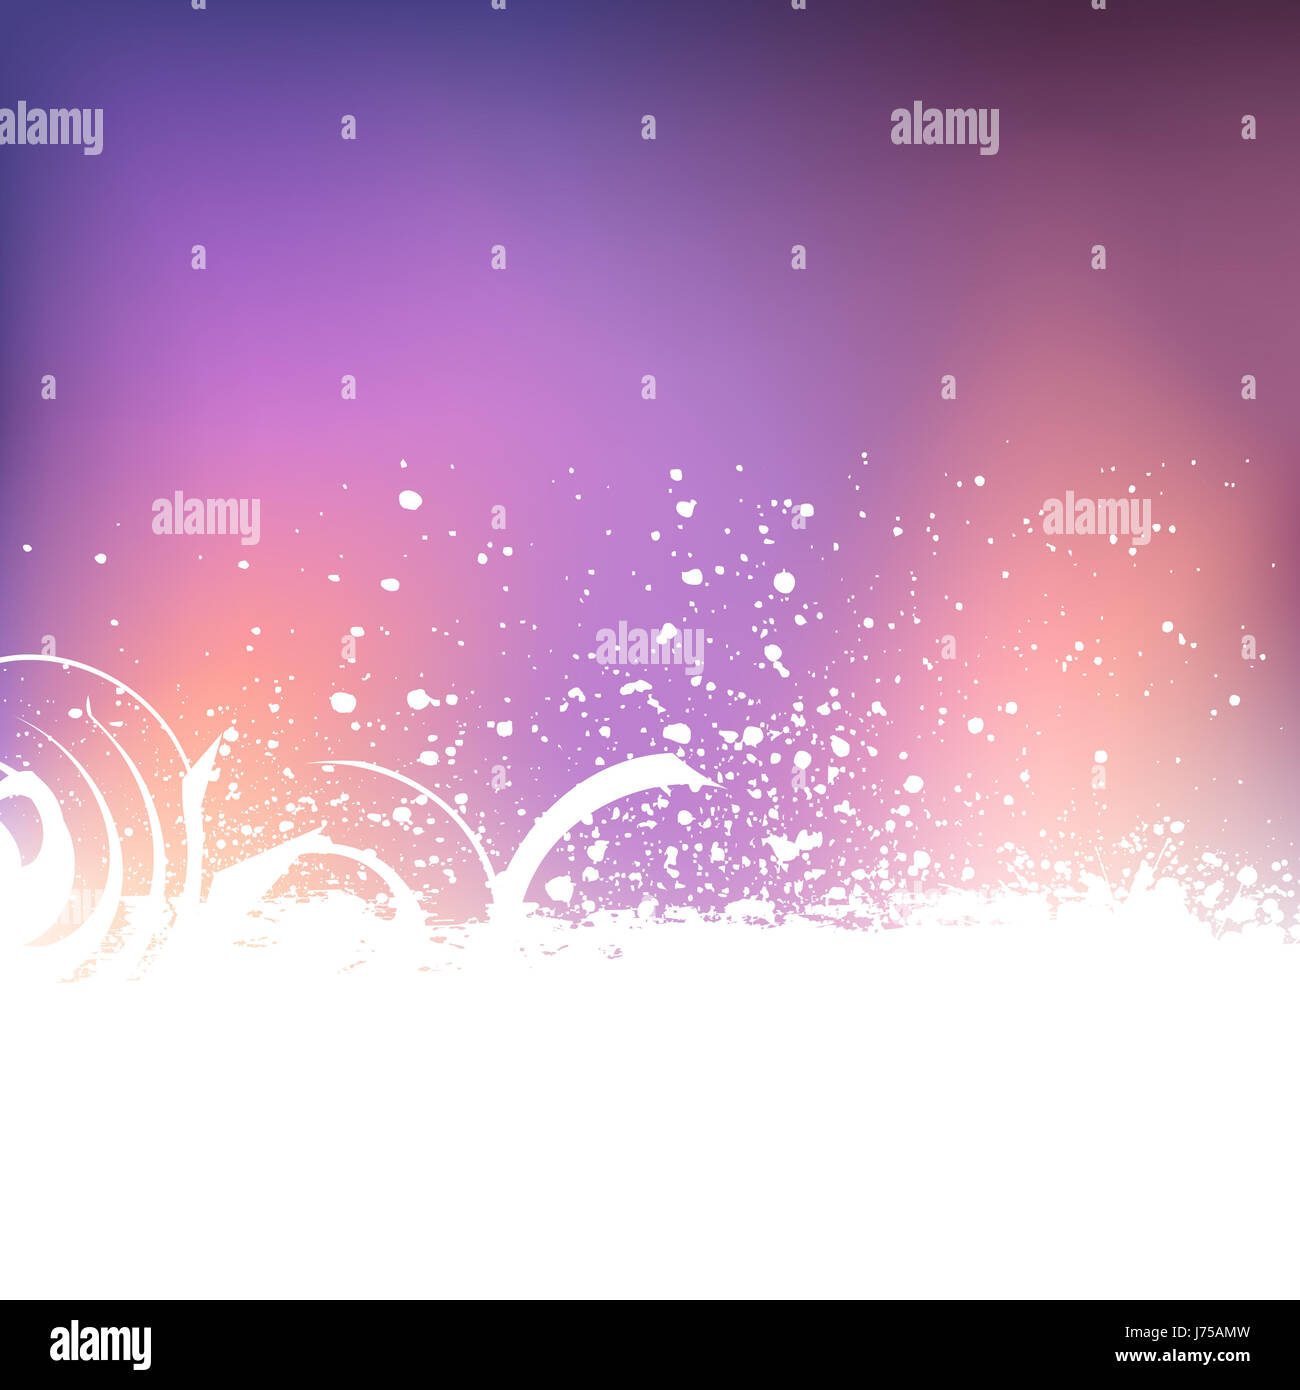 Art Advertise Adverts Gradient Wallpaper Wooing White Yellow Wave